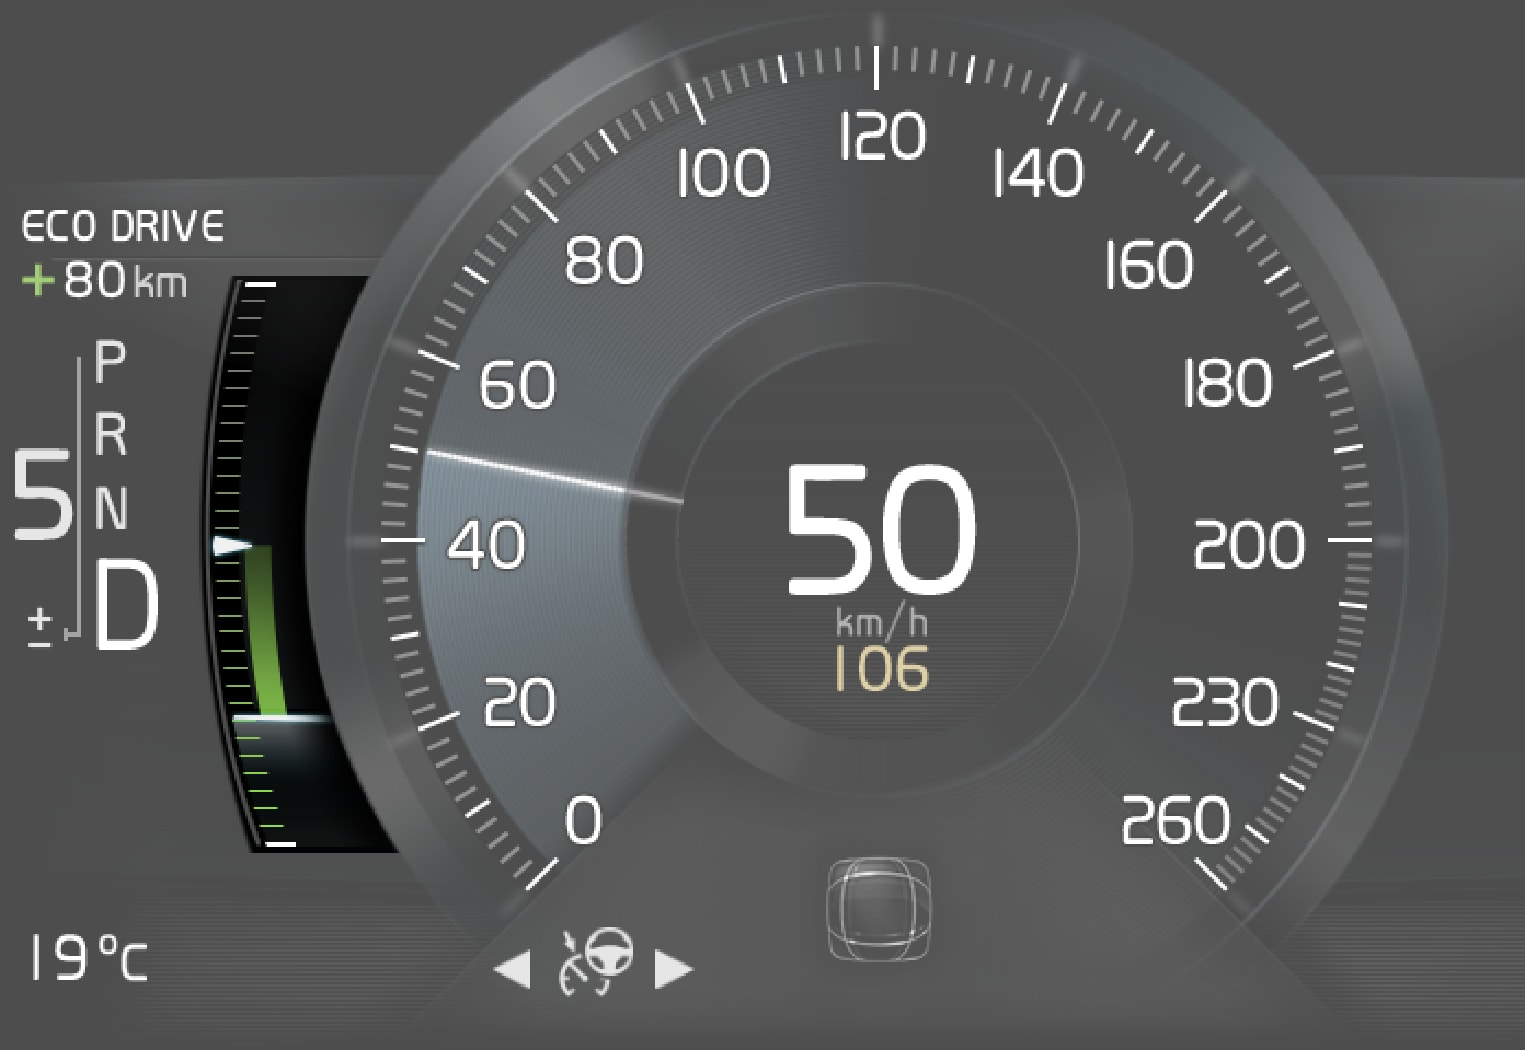 P5-1546-XC90-Eco guide in 8 inch driver display